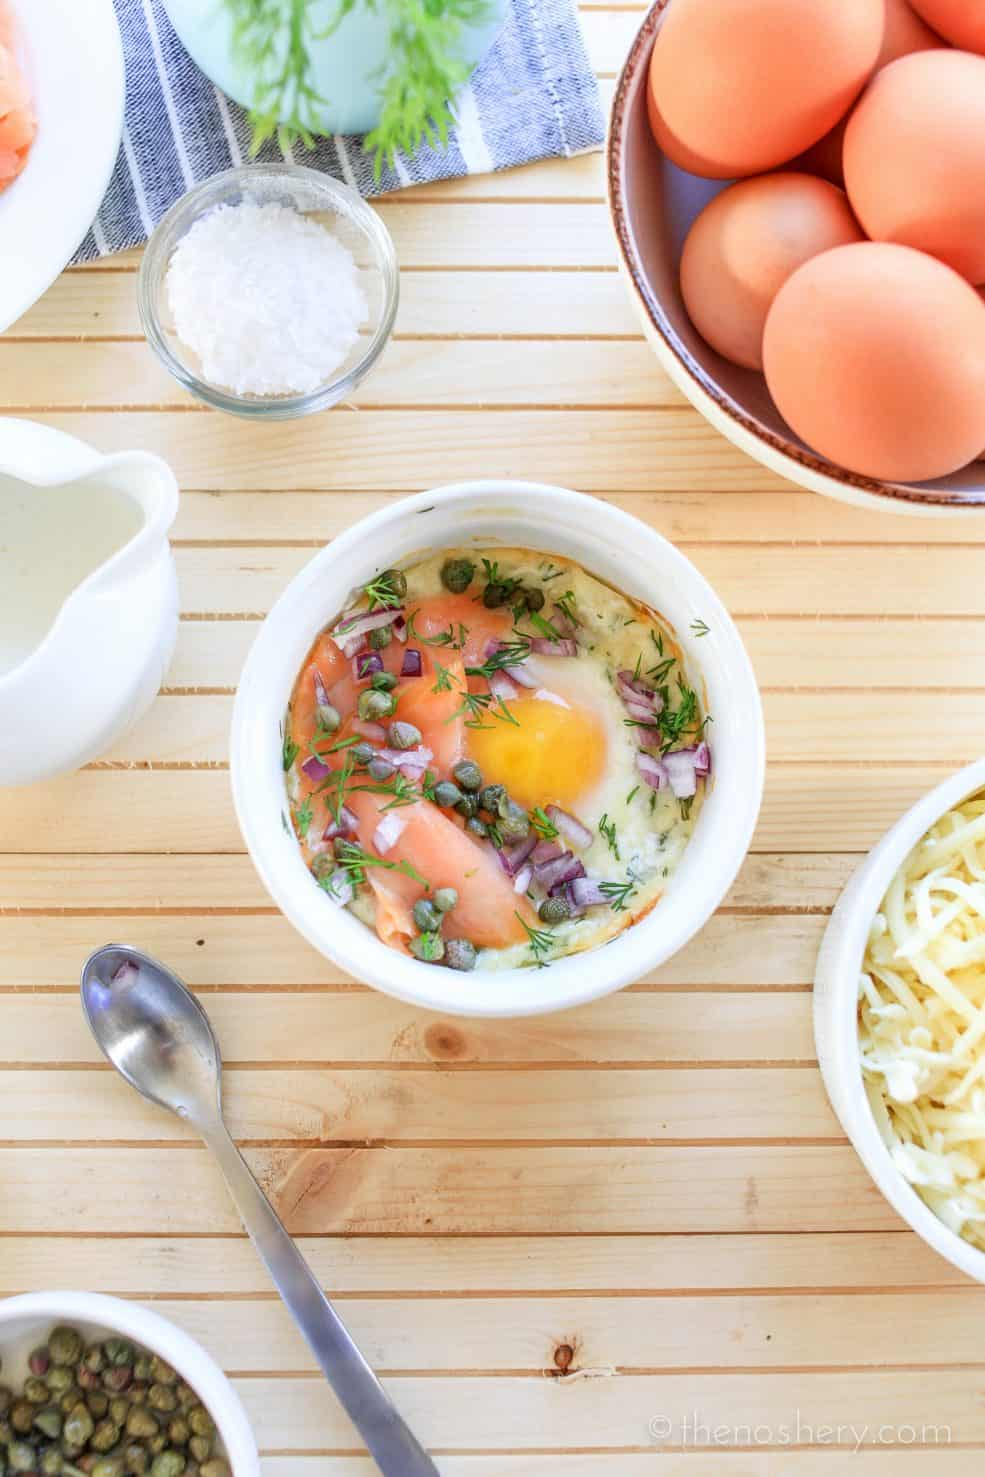 Baked Eggs with Smoked Salmon [VIDEO] | TheNoshery.com